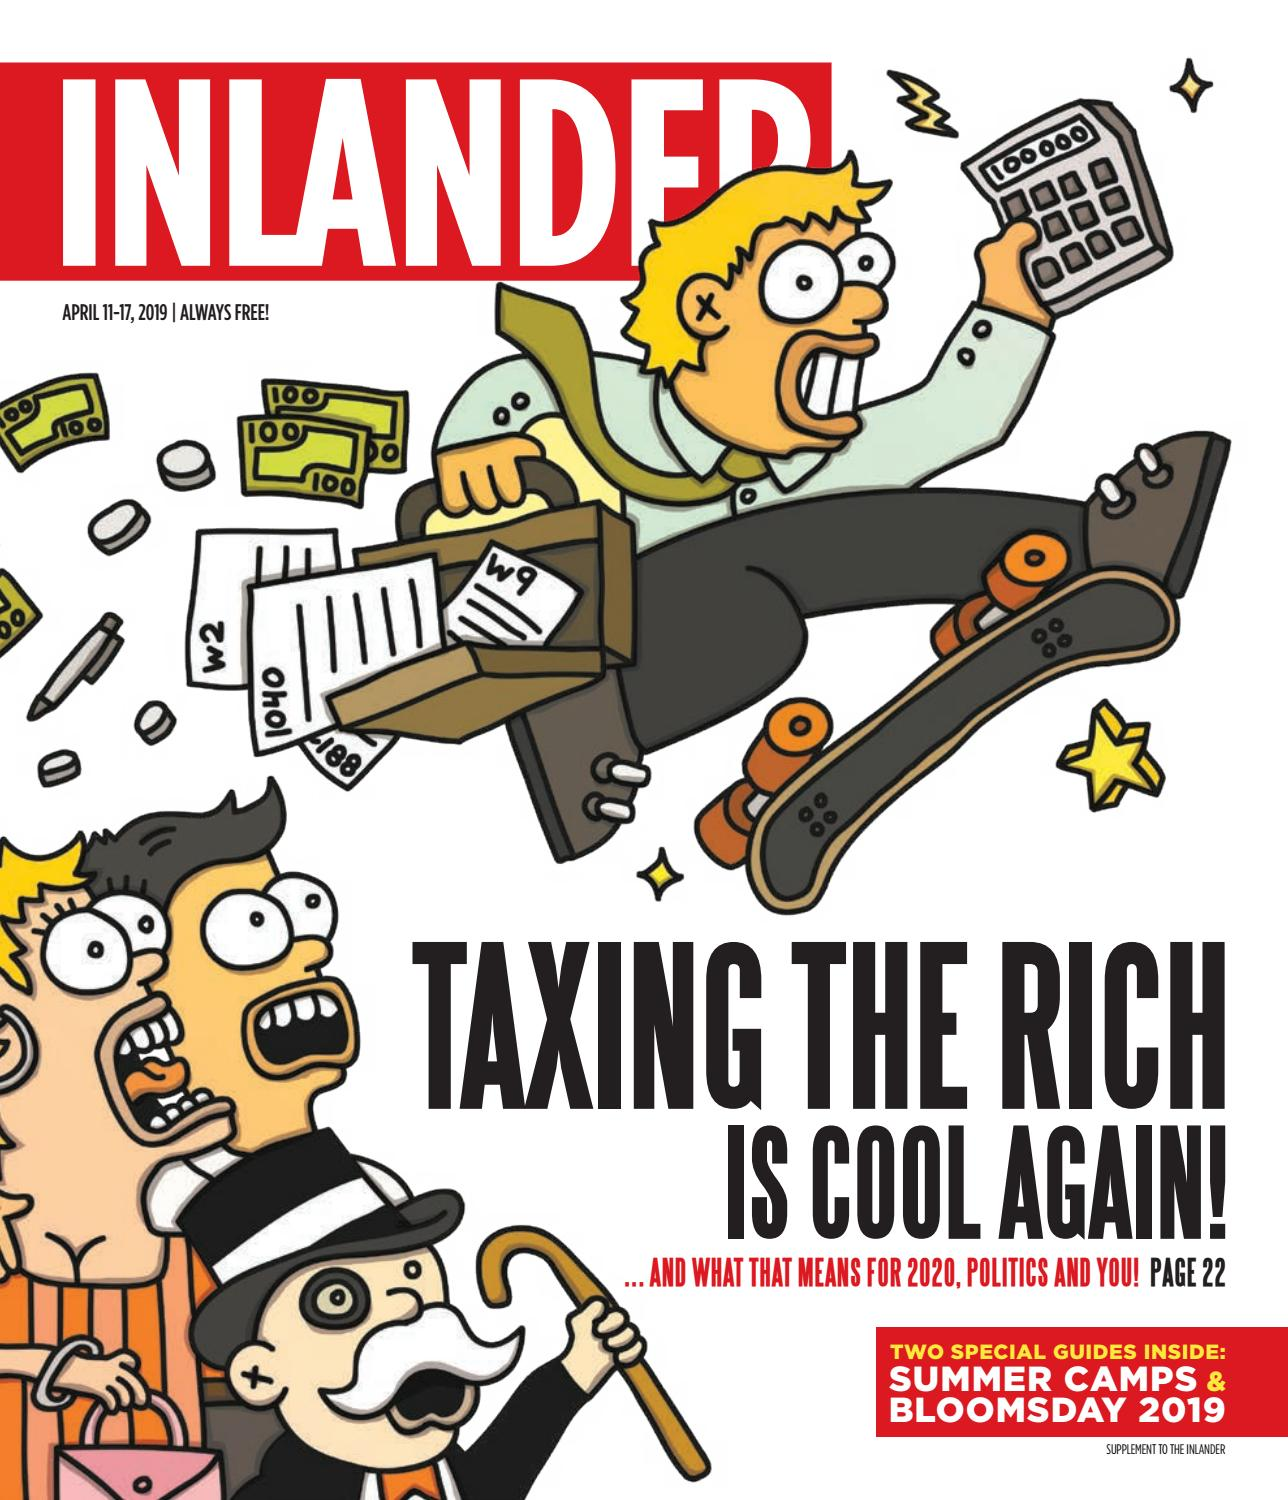 Inlander 04 11 2019 By The Inlander Issuu